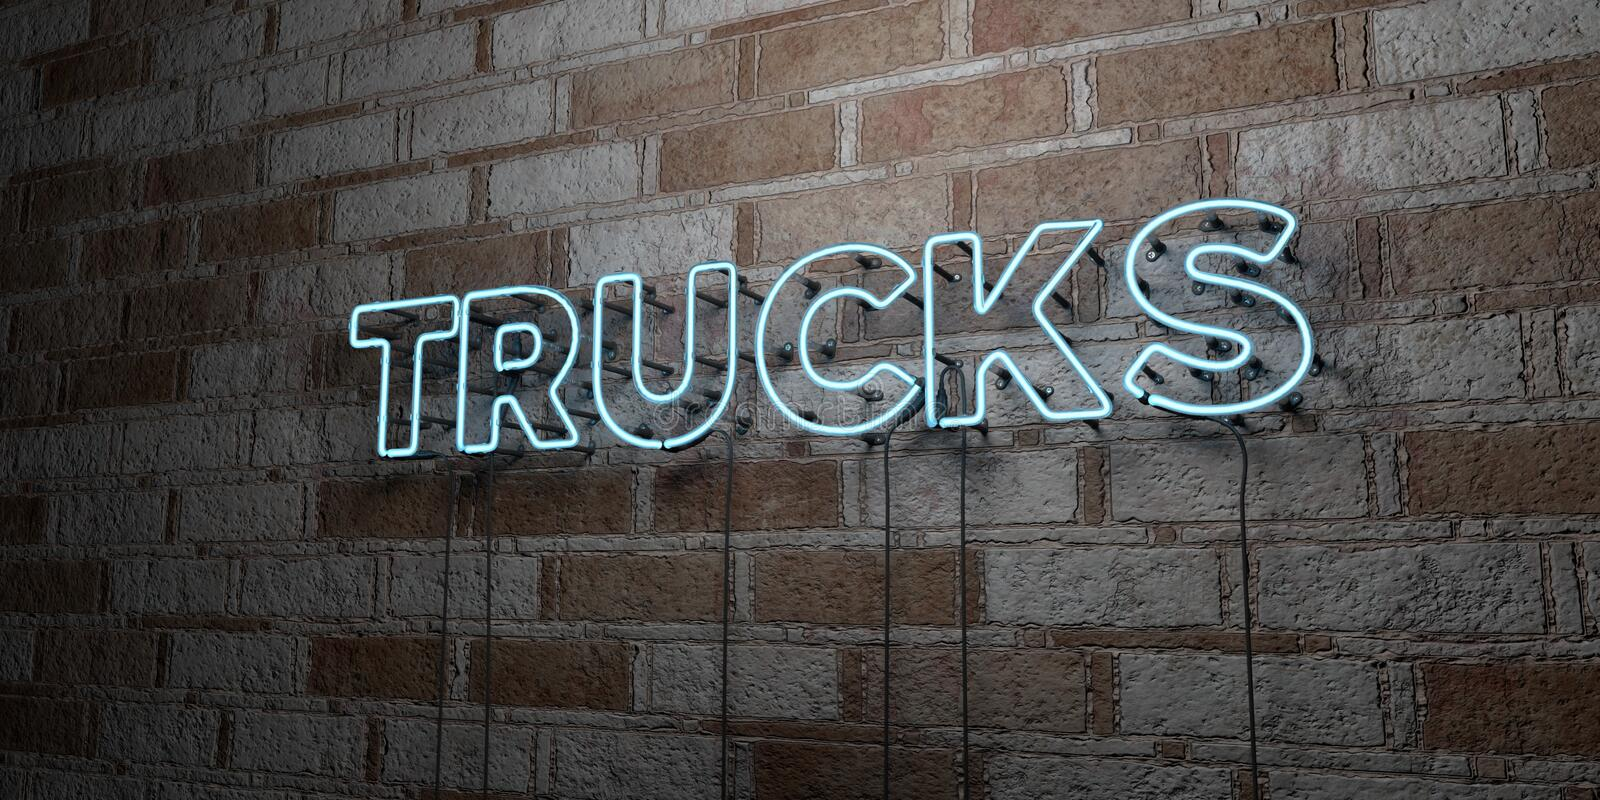 TRUCKS - Glowing Neon Sign on stonework wall - 3D rendered royalty free stock illustration. Can be used for online banner ads and direct mailers vector illustration